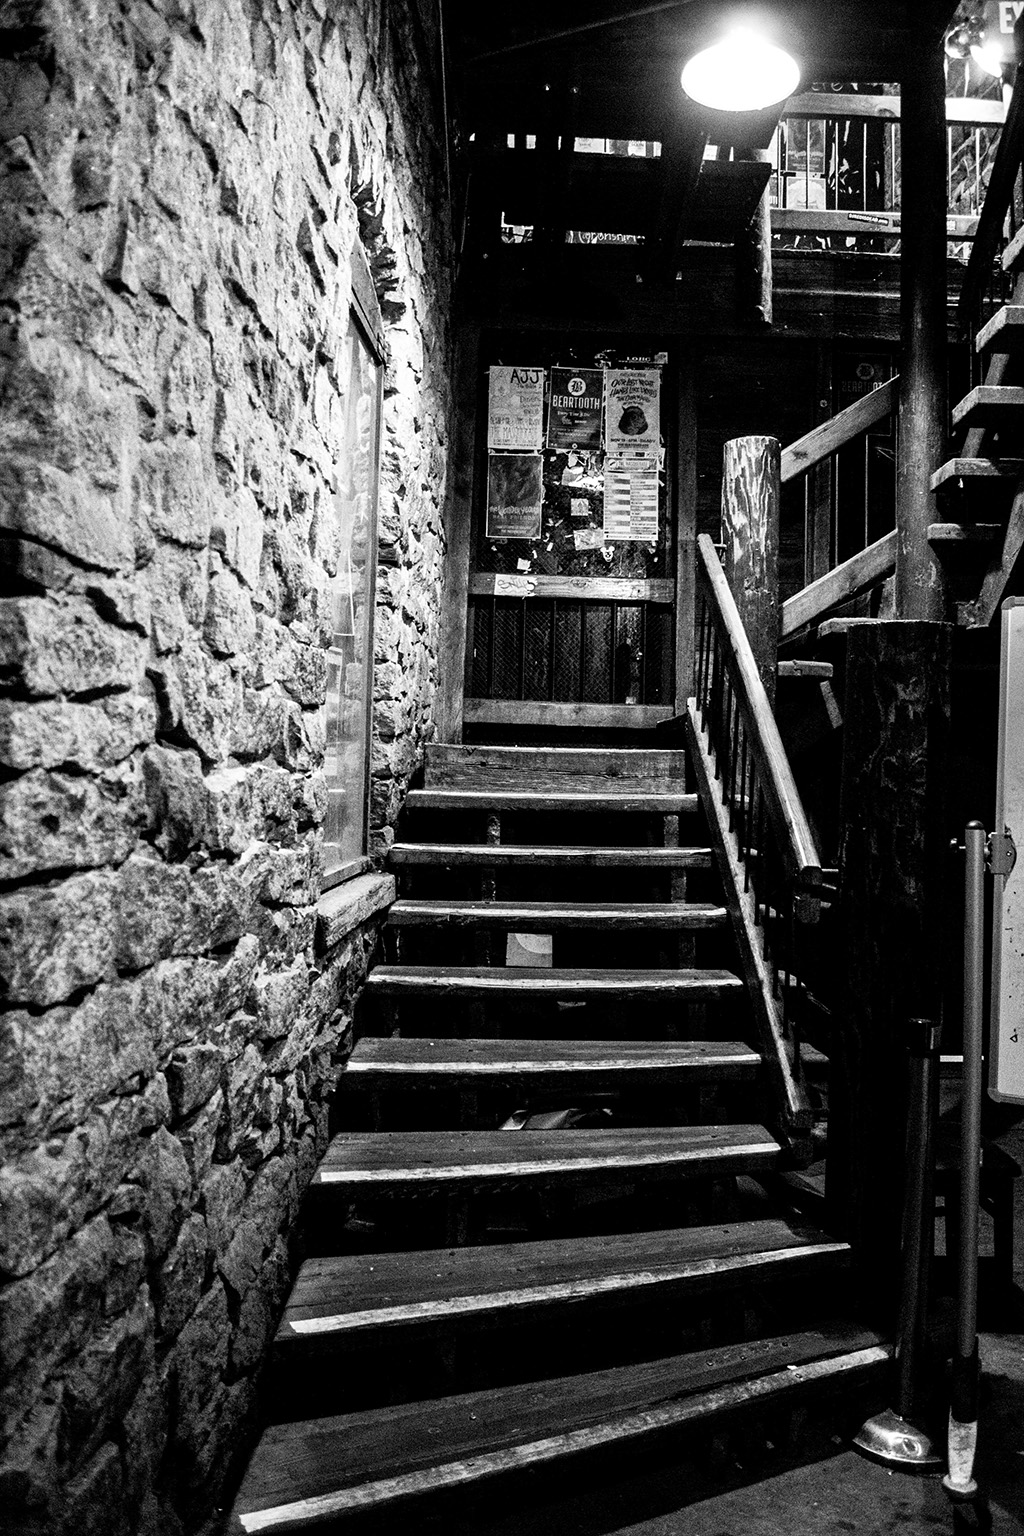 These photos were taken at The Masquerade, located in Atlanta, GA, on the final night it was open as a club venue. The historic location was once an excelsior mill before becoming The Masquerade in the 1980s. Created in my third semester at VCFA.